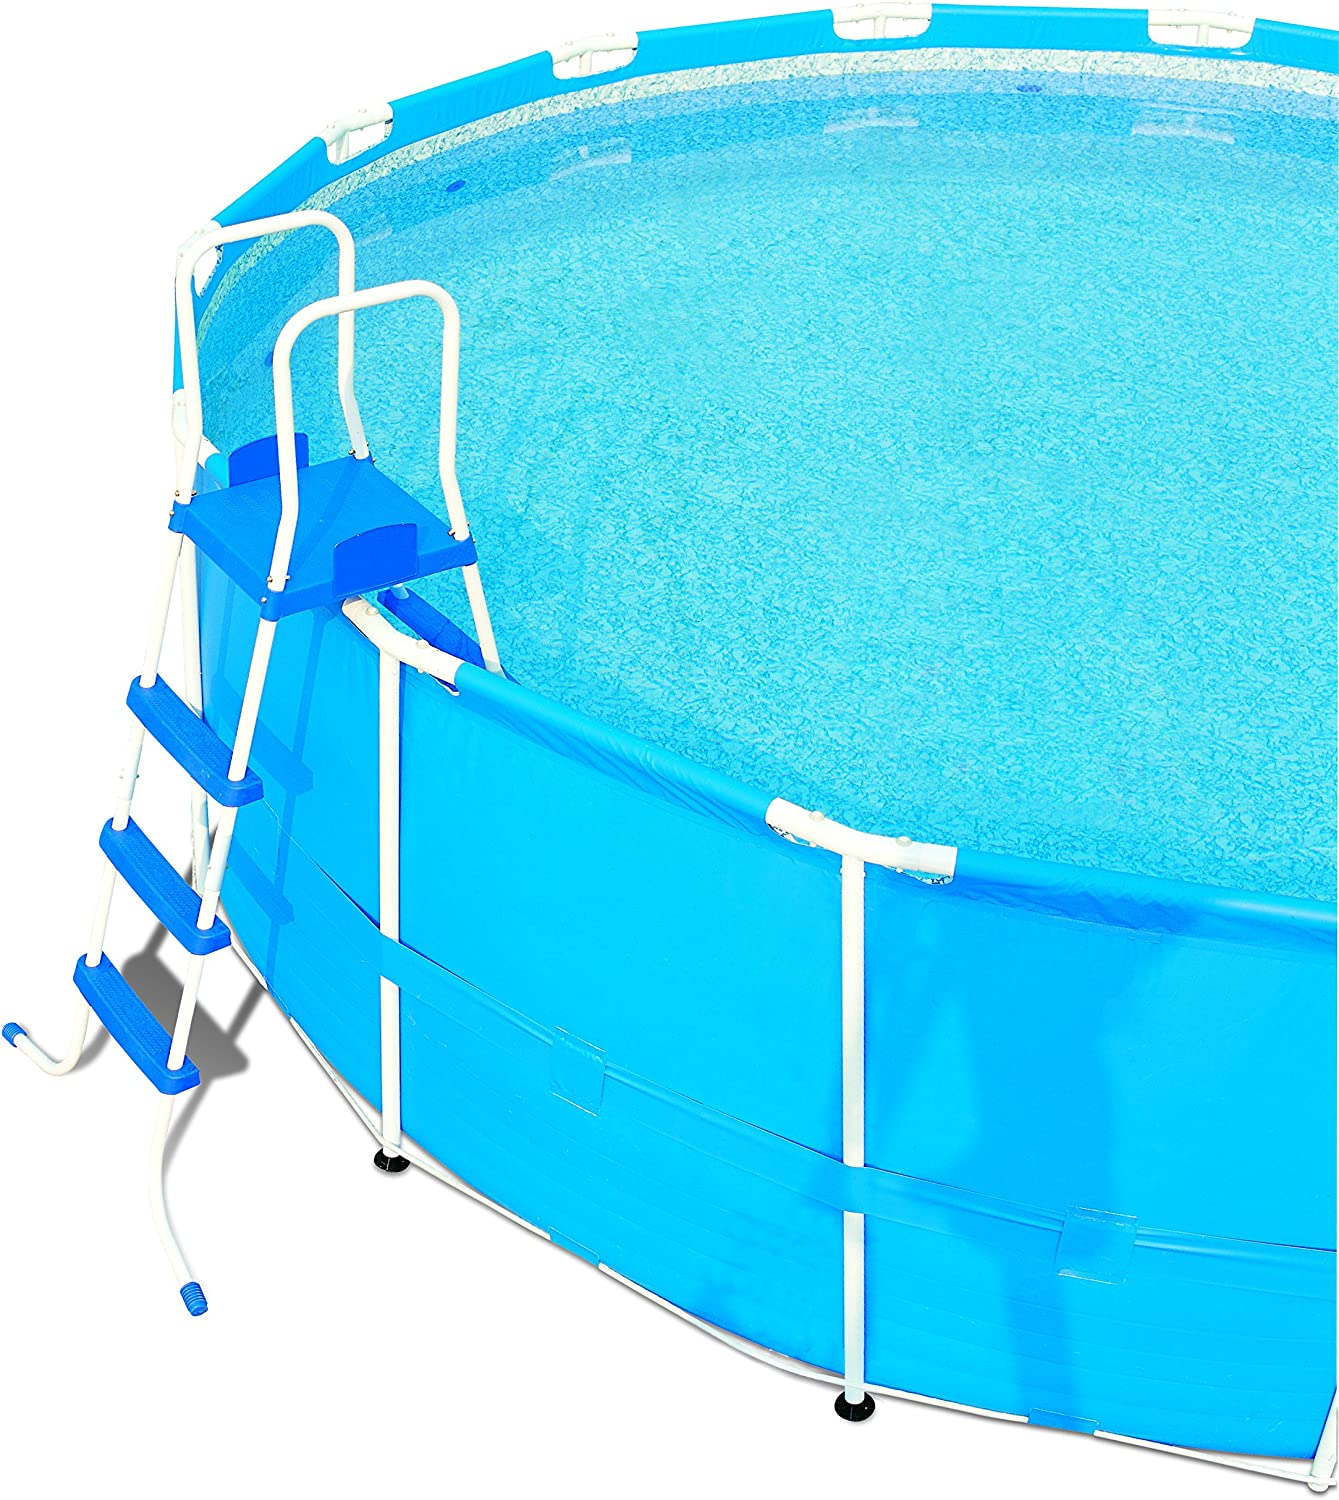 Escalera para Piscina Desmontable Bestway 122 cm: Amazon.es: Jardín